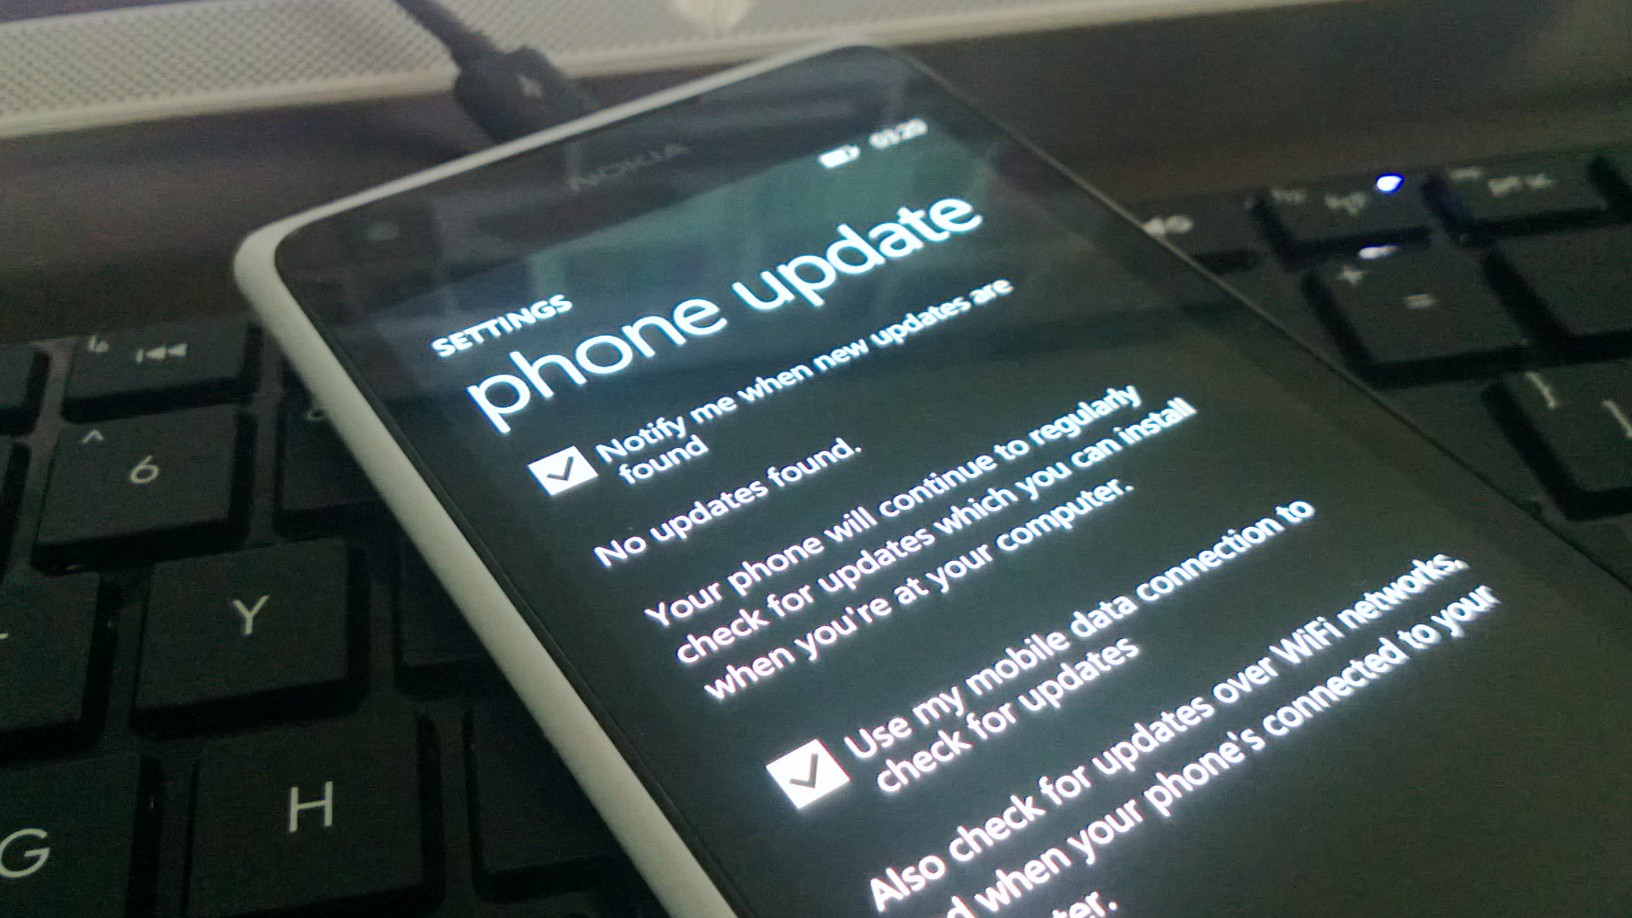 Rumor: WP7.8 To be Pushed Out To All Devices And Carriers at 6:00 PM Today